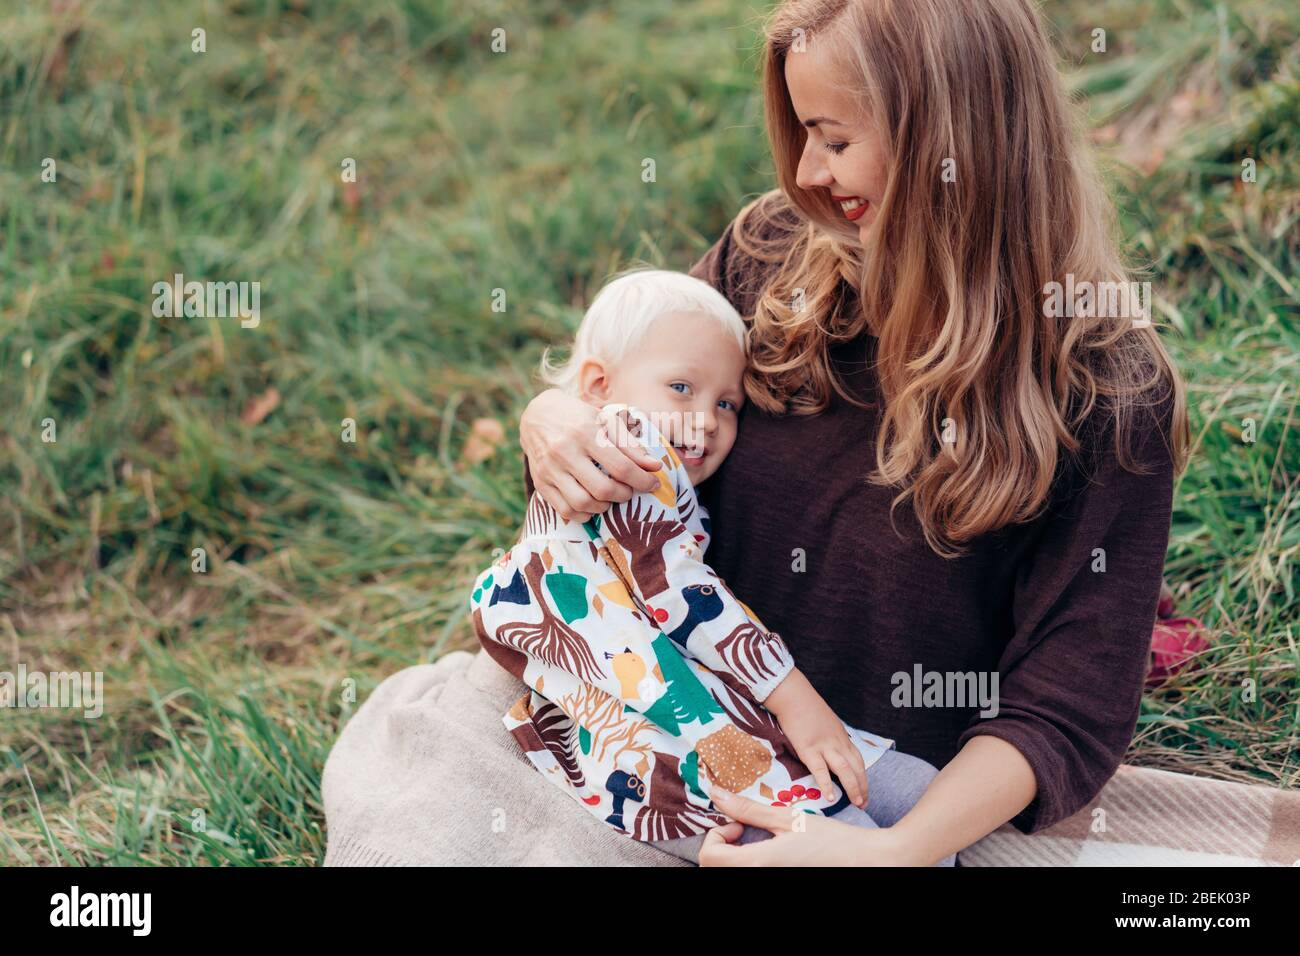 Cute mom hugs and toddler daughters. Family lifestyle in nature. Stock Photo